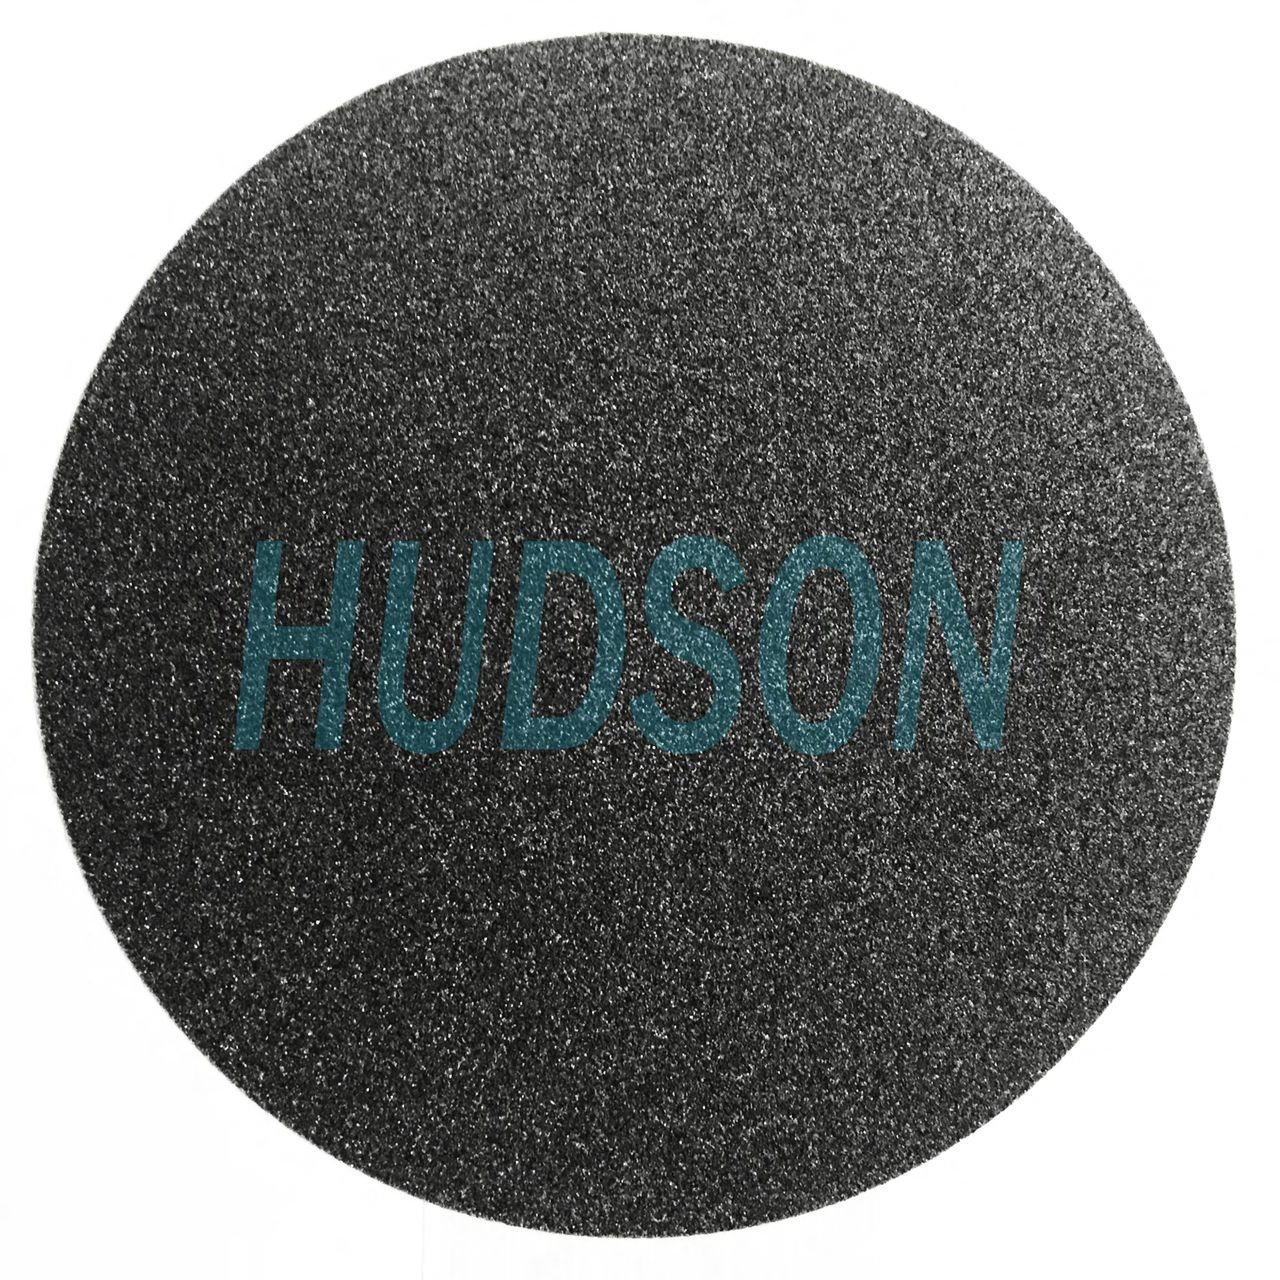 HUDSON 250mm SiC, C-Weight Paper, Wet/Dry. Metallurgical Paper Plain Back 80 Grit Abrasive Discs (100 Pack) by HUDSON